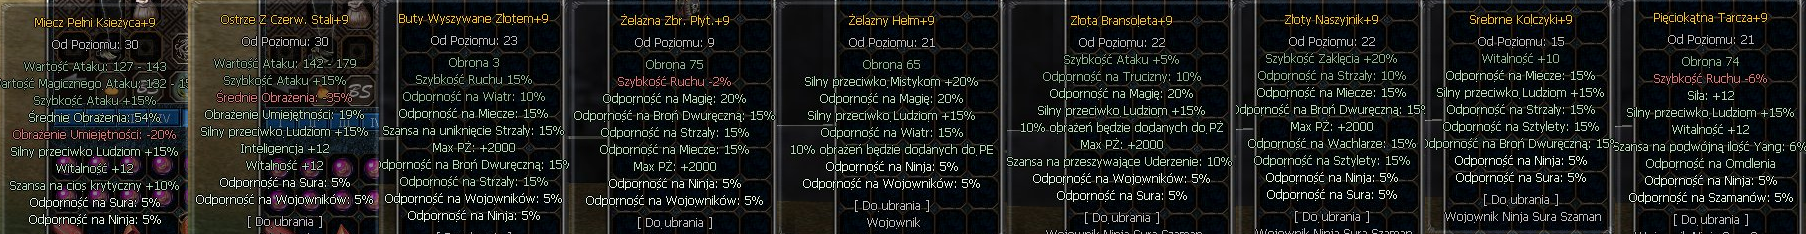 eq%20the%20end.png